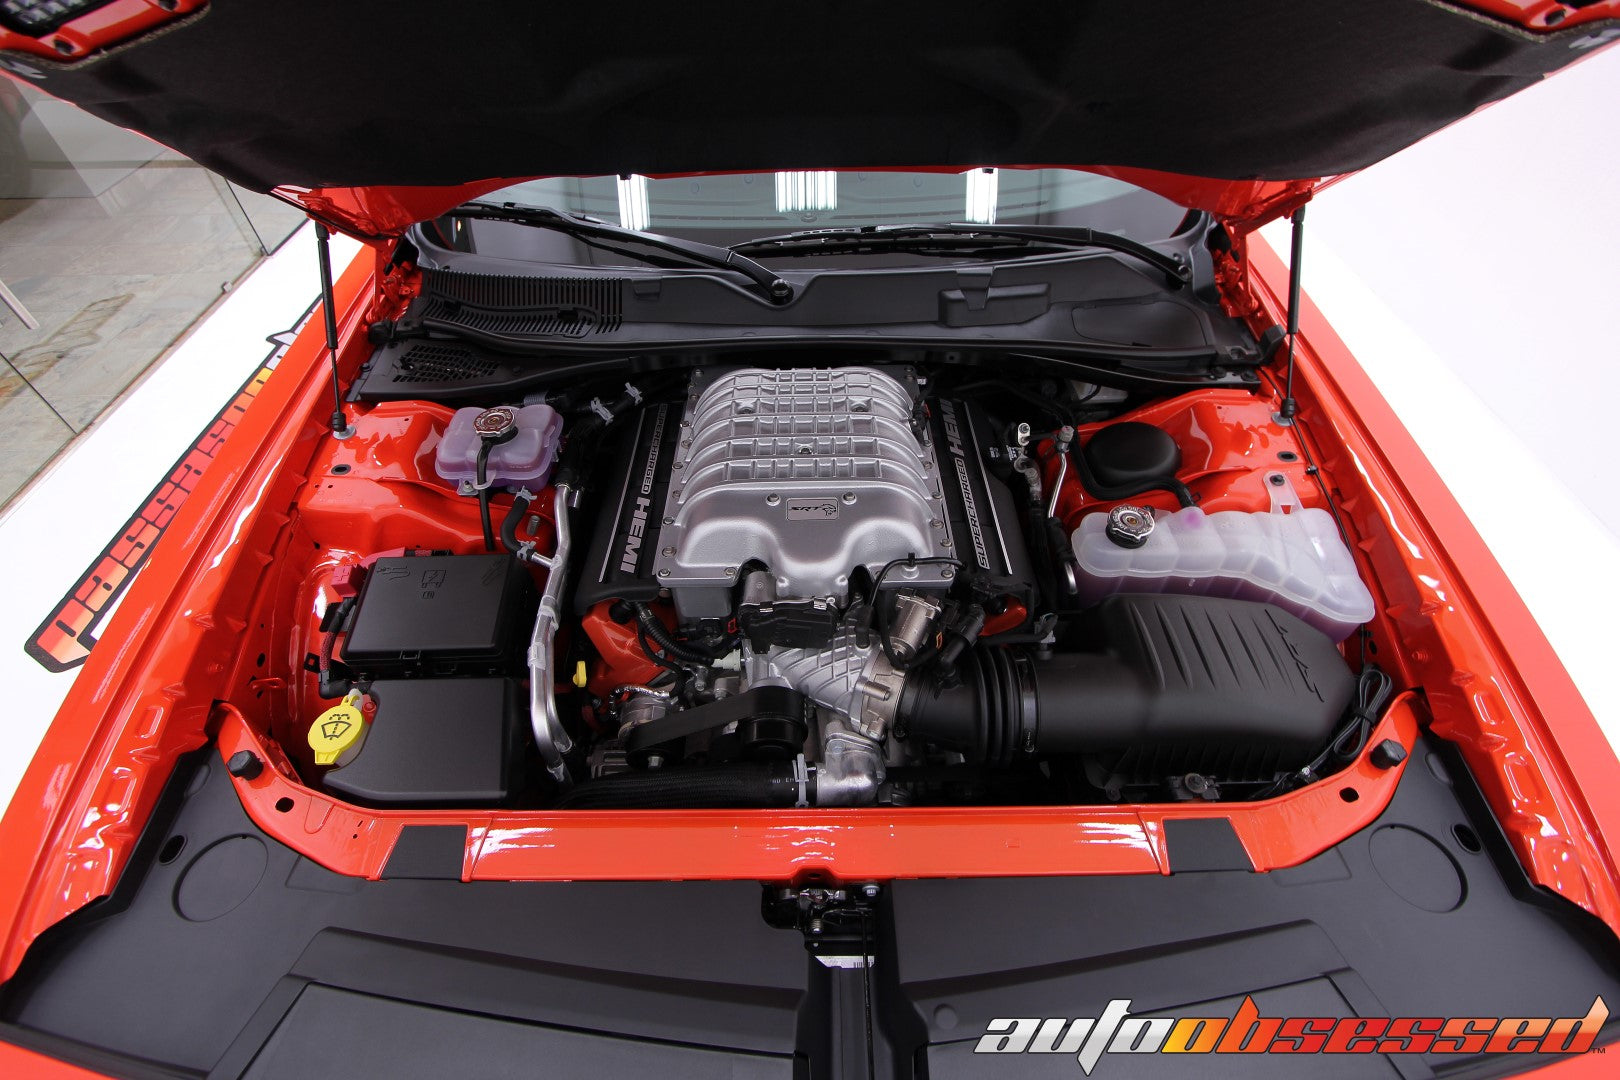 2018 Dodge Challenger Hellcat Engine Bay Detailing - Auto Obsessed